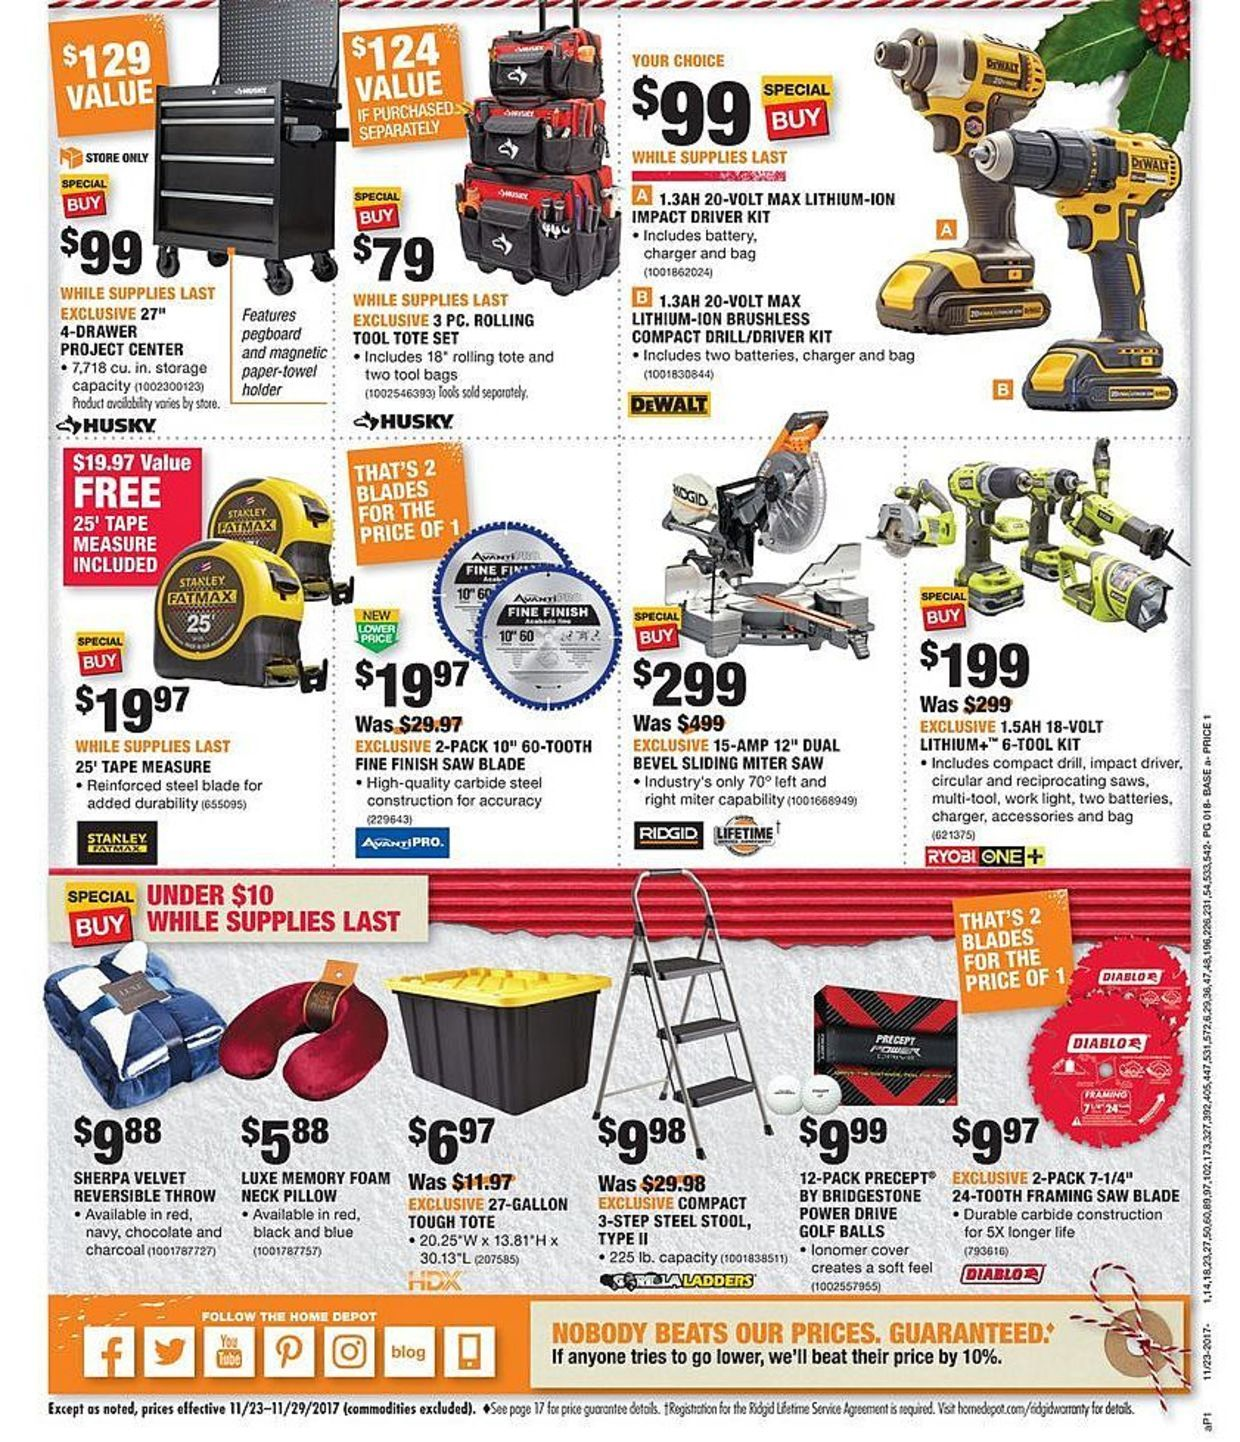 Home Depot Black Friday 2017 Ads And Deals As Usual Home